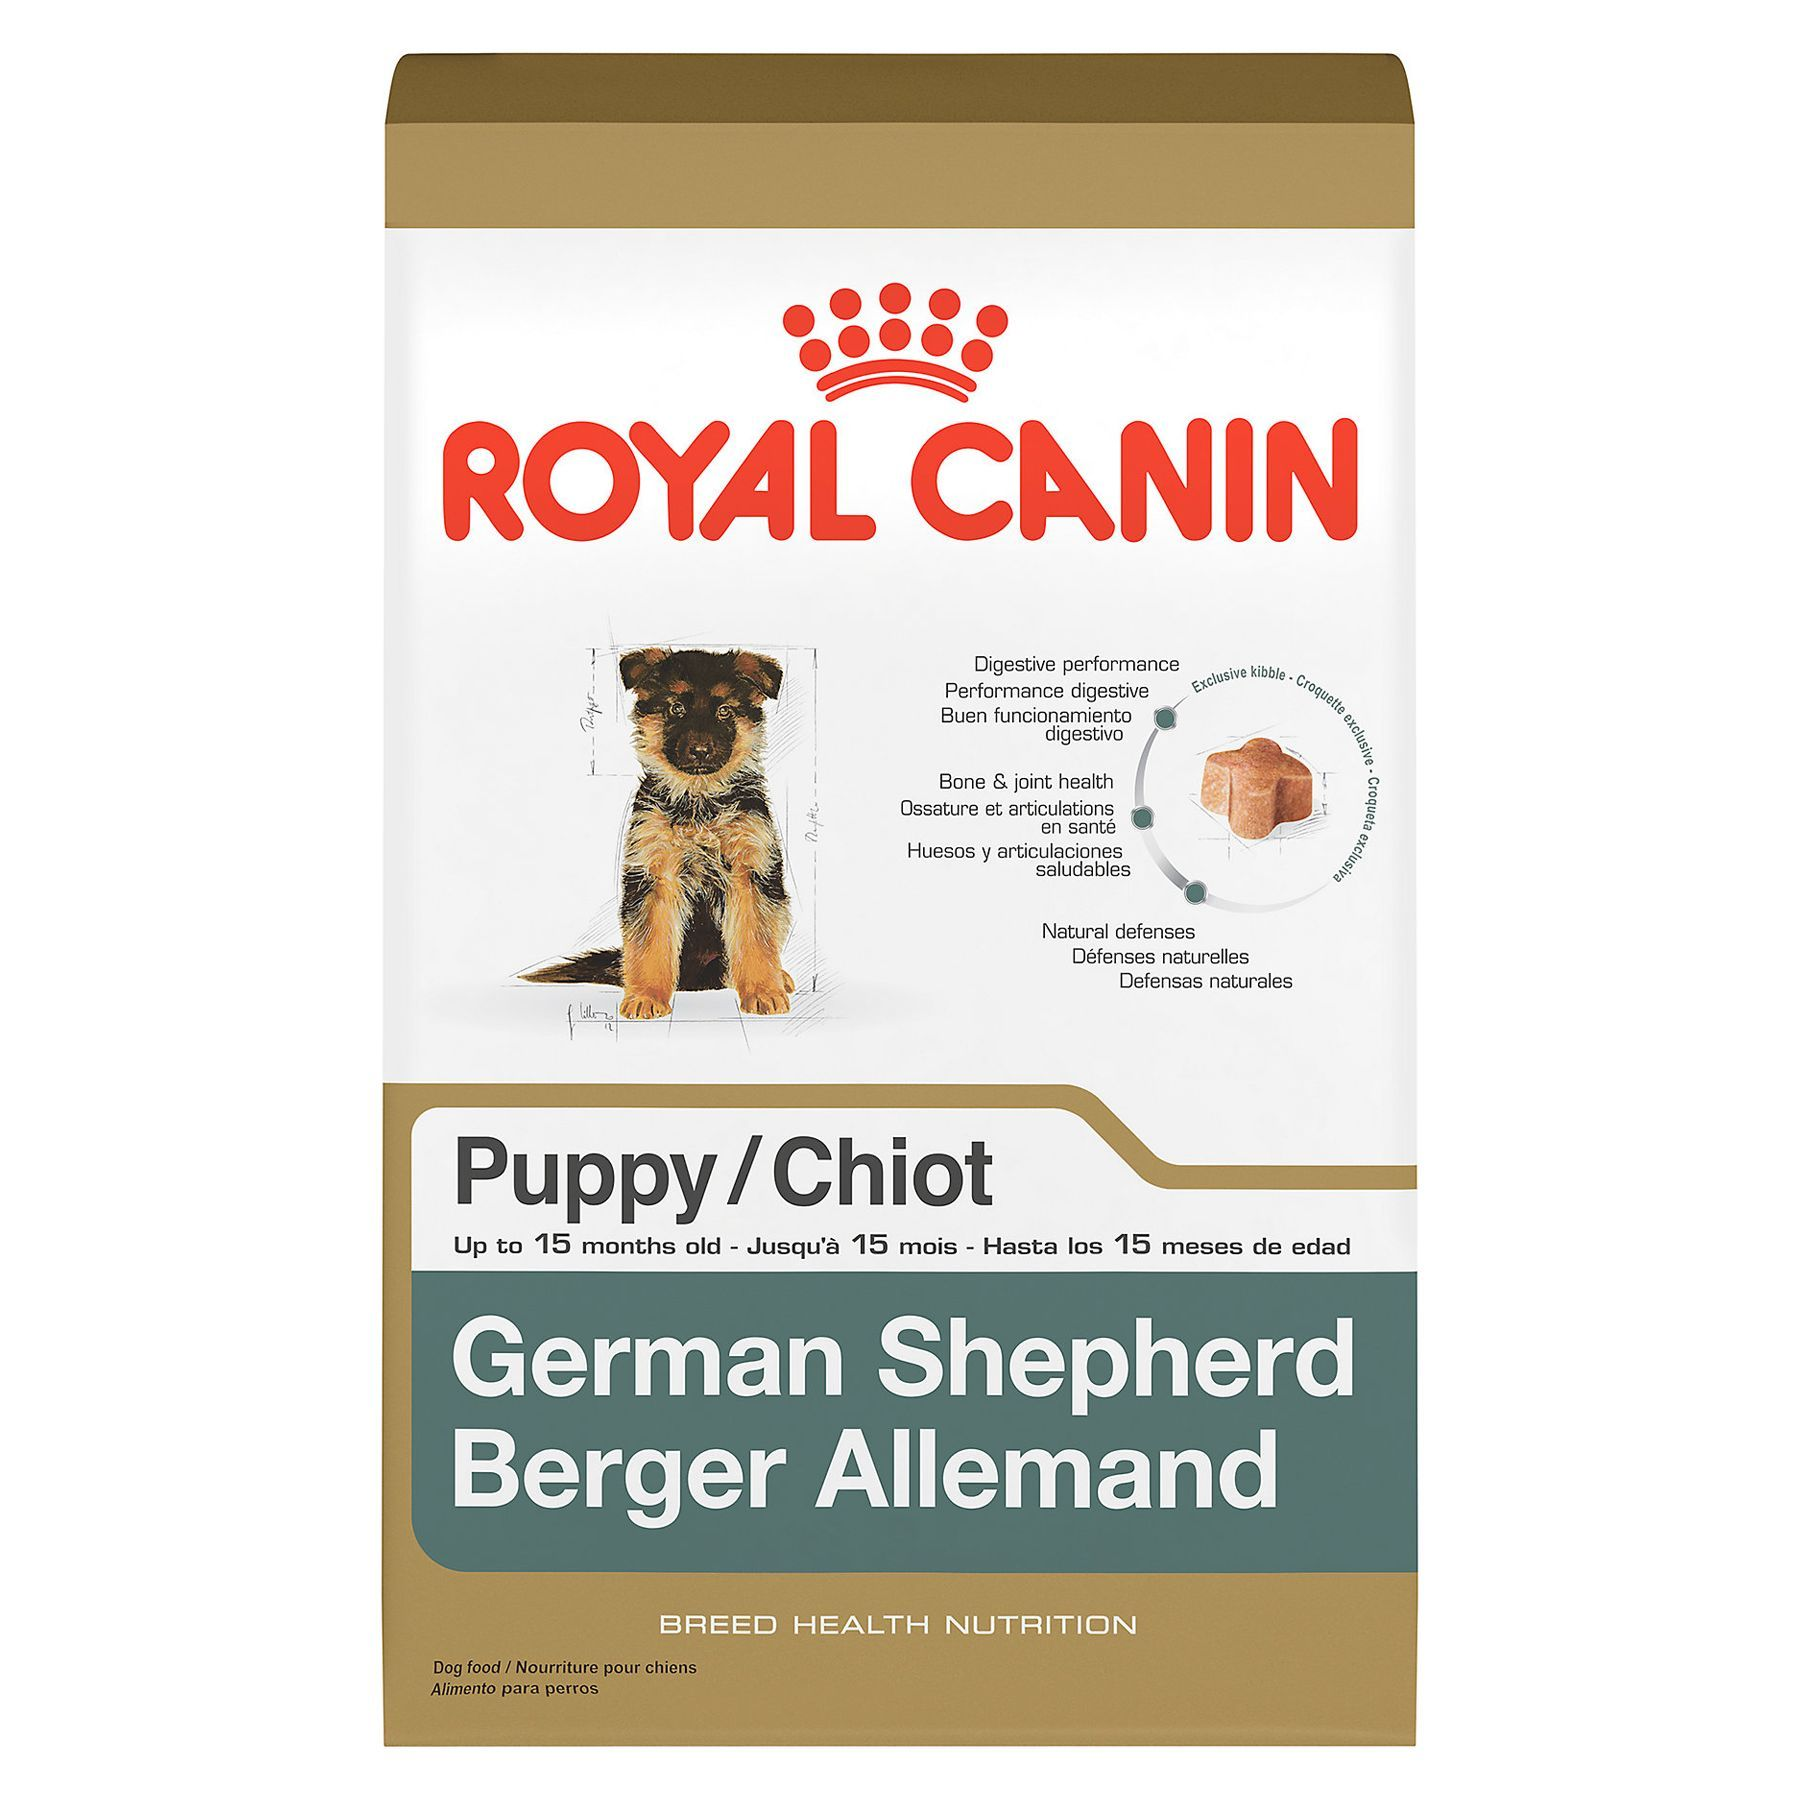 Royal Canin Breed Health Nutrition German Shepherd Puppy Food